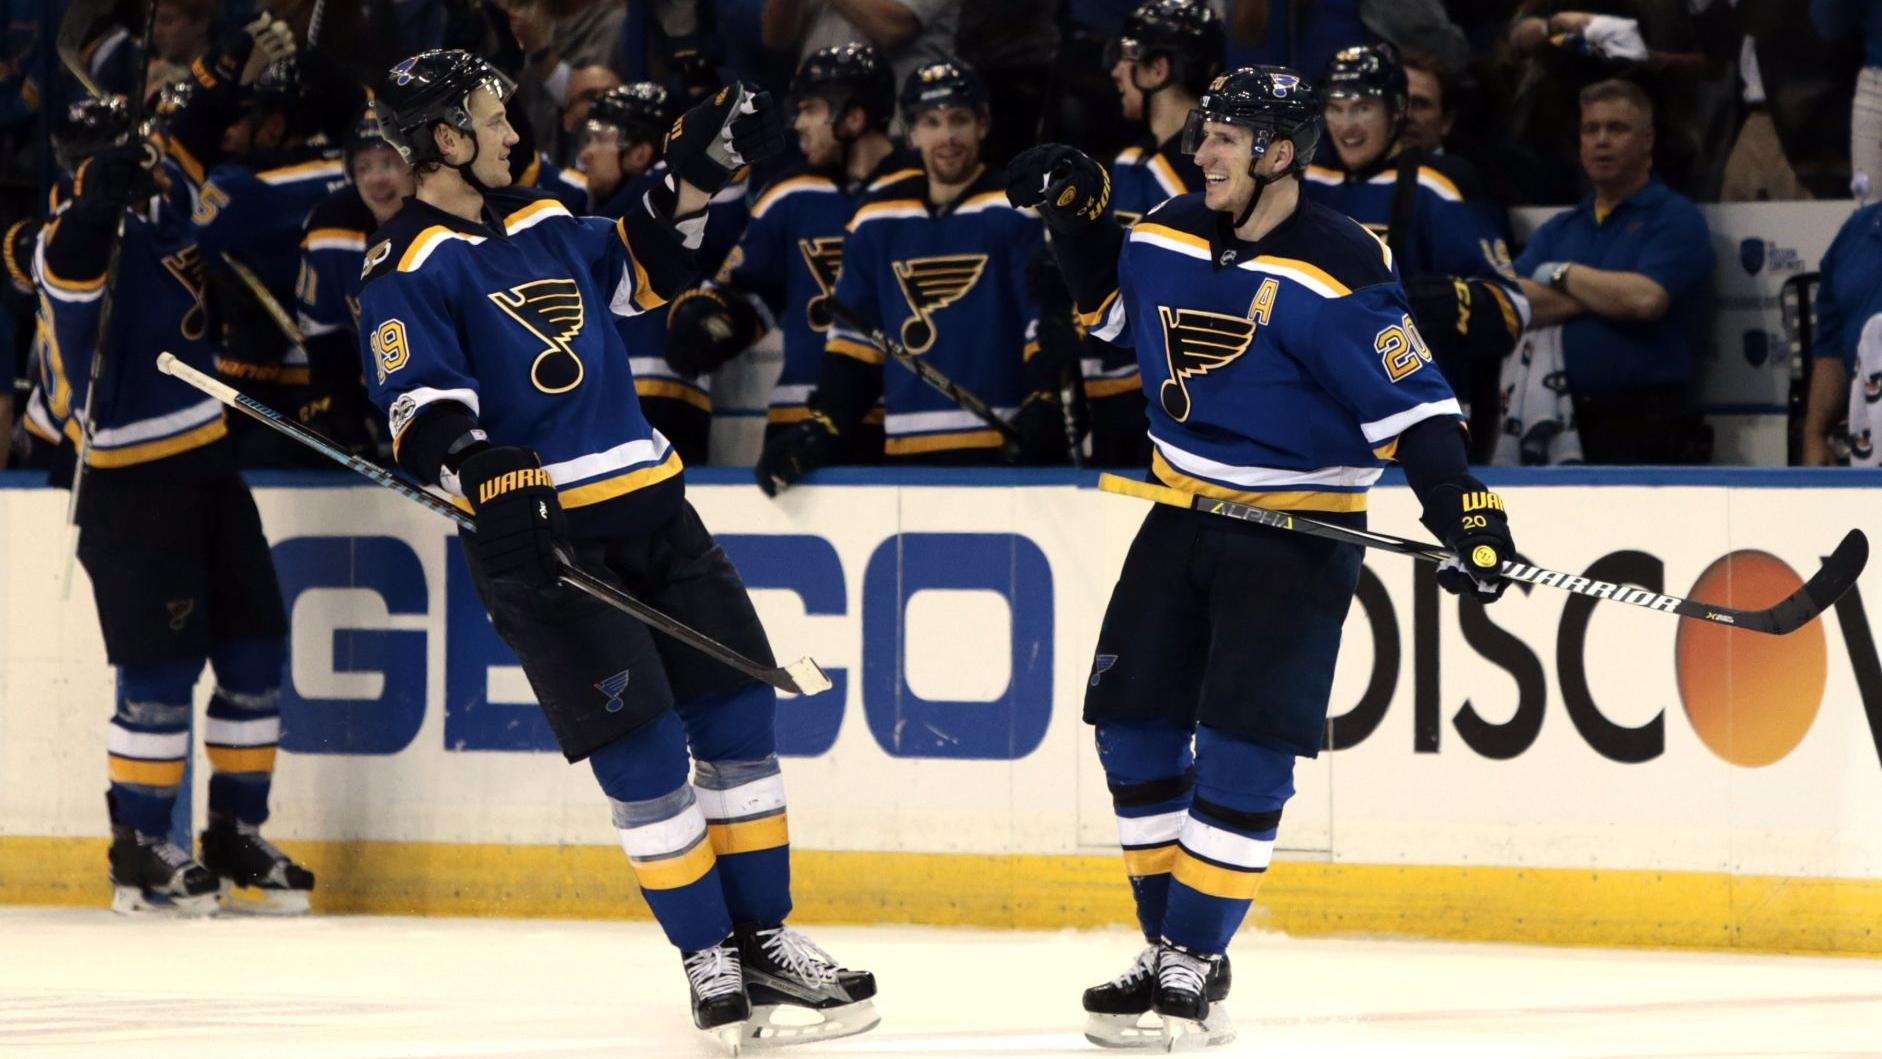 Bouwmeester's game a lot louder than he is